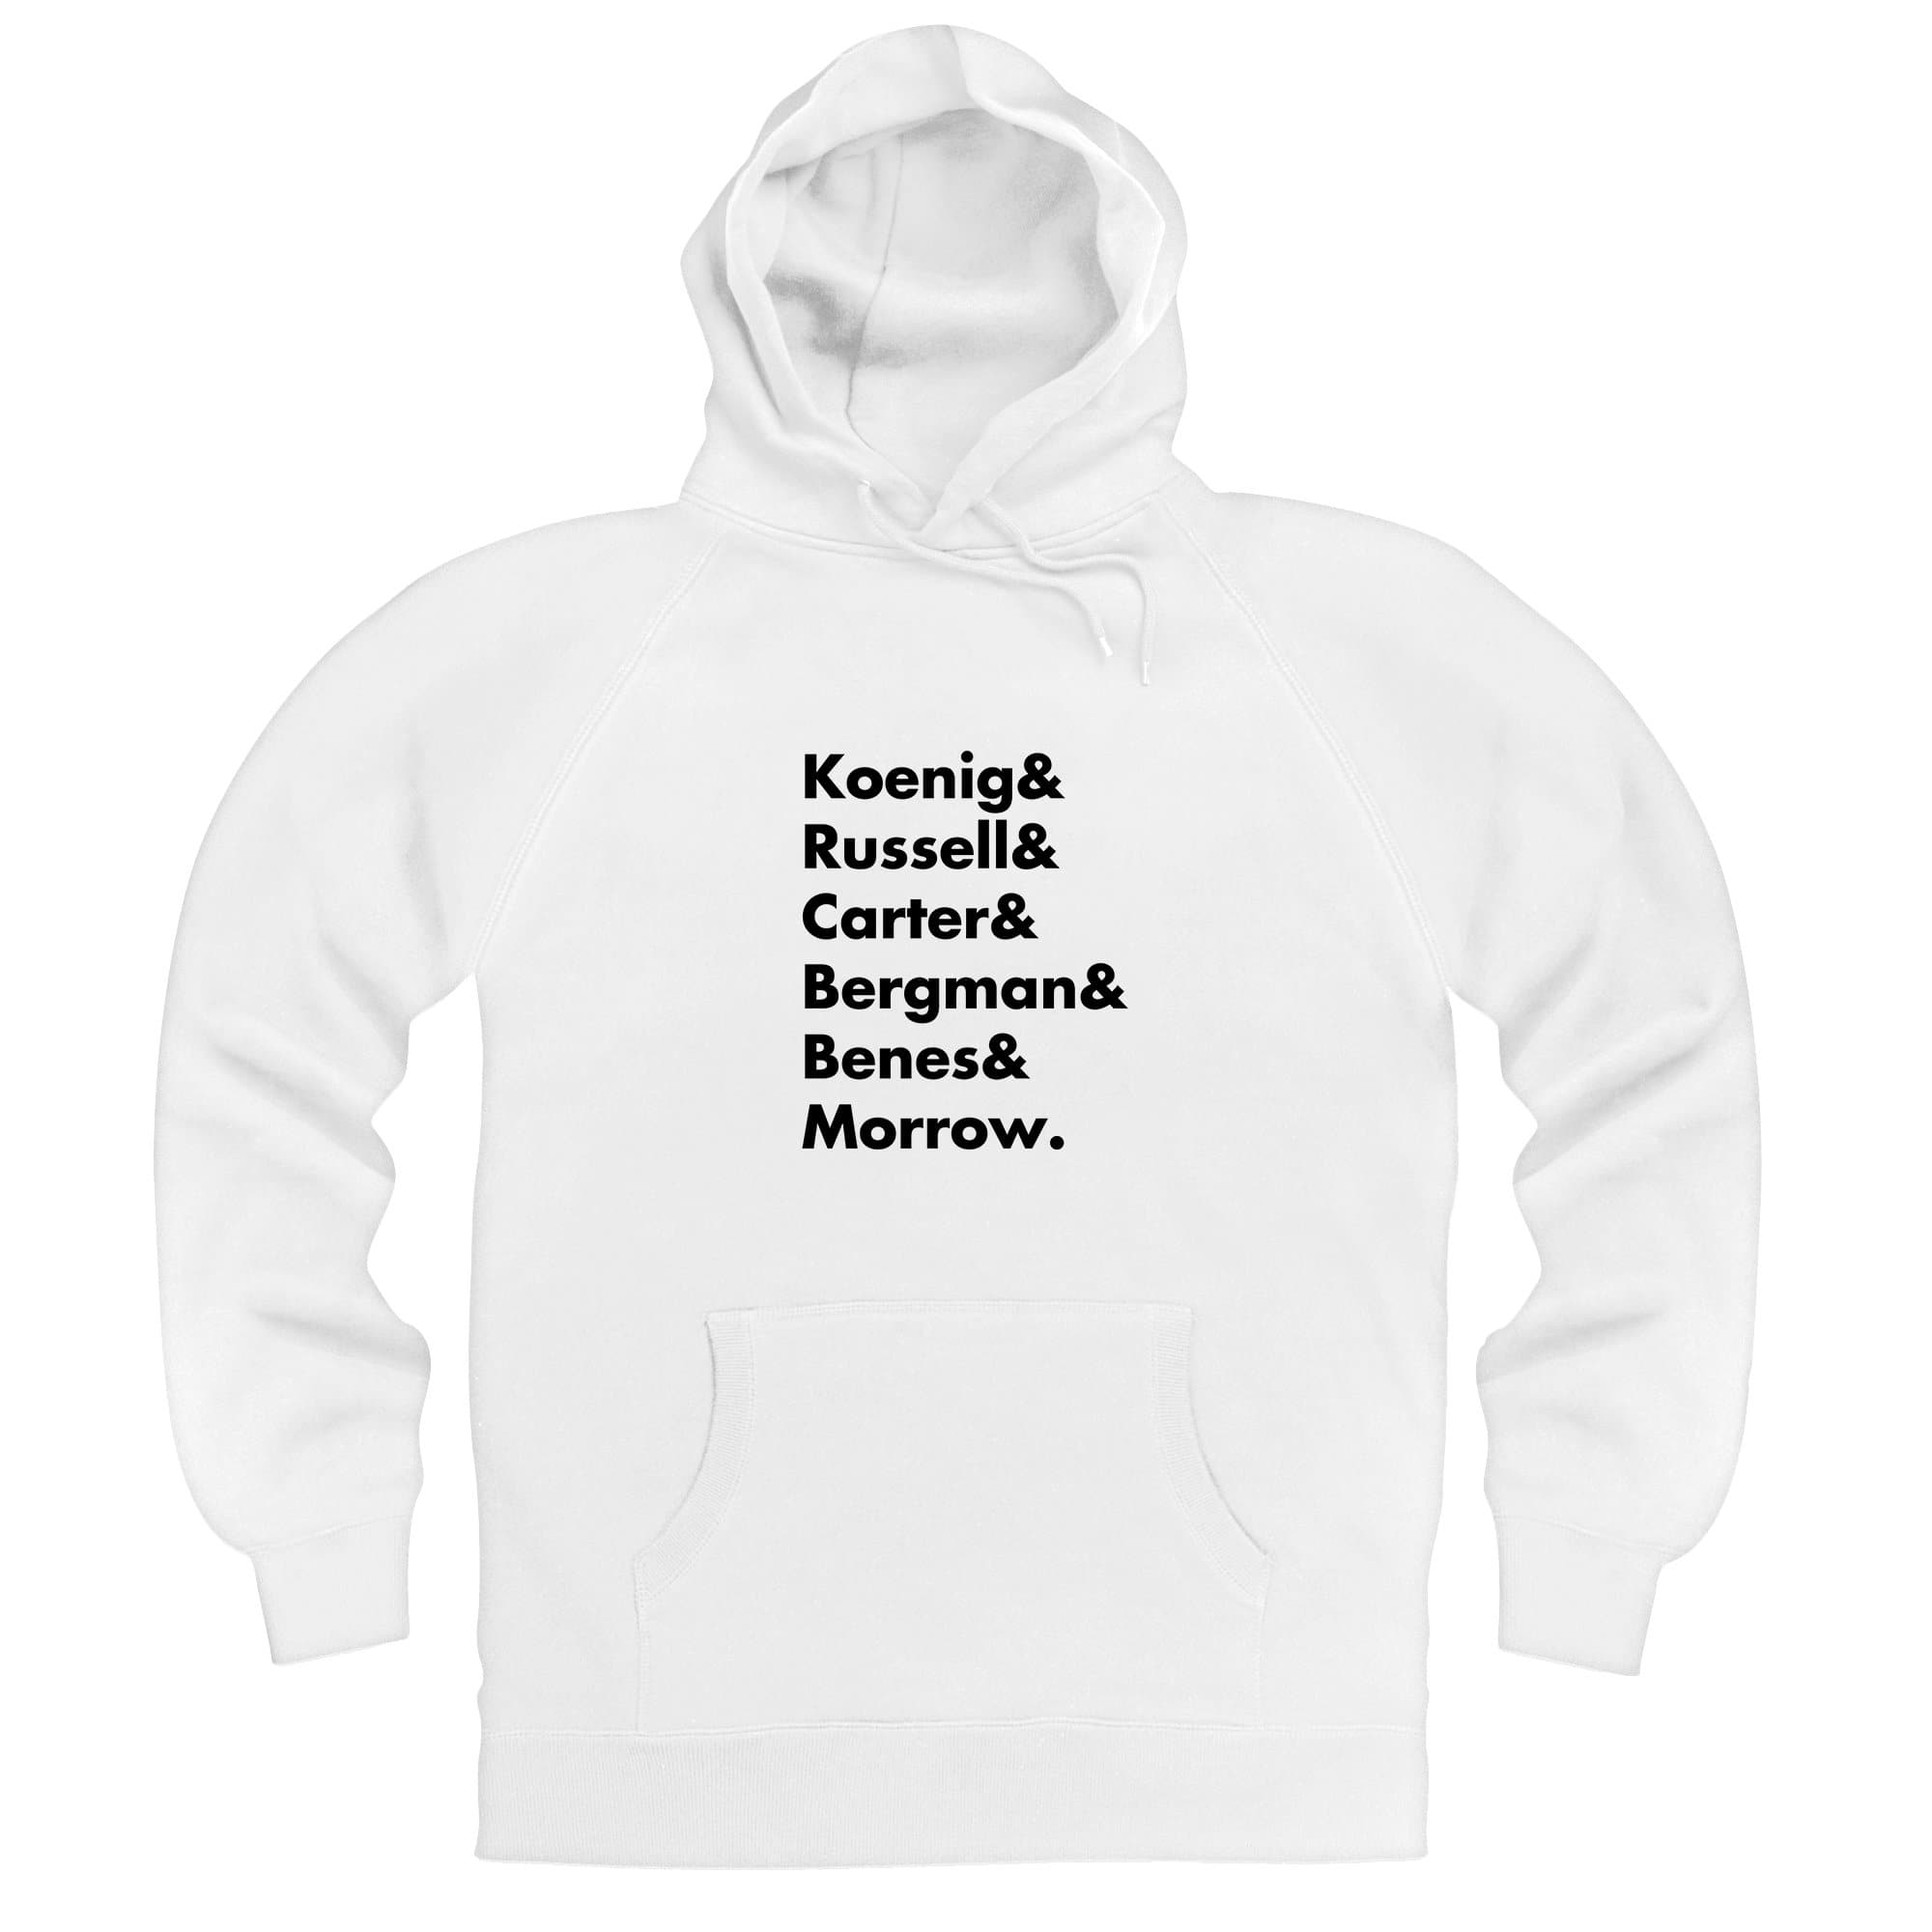 Heroes of Moonbase Alpha White Hoodie [Official & Exclusive] - The Gerry Anderson Store